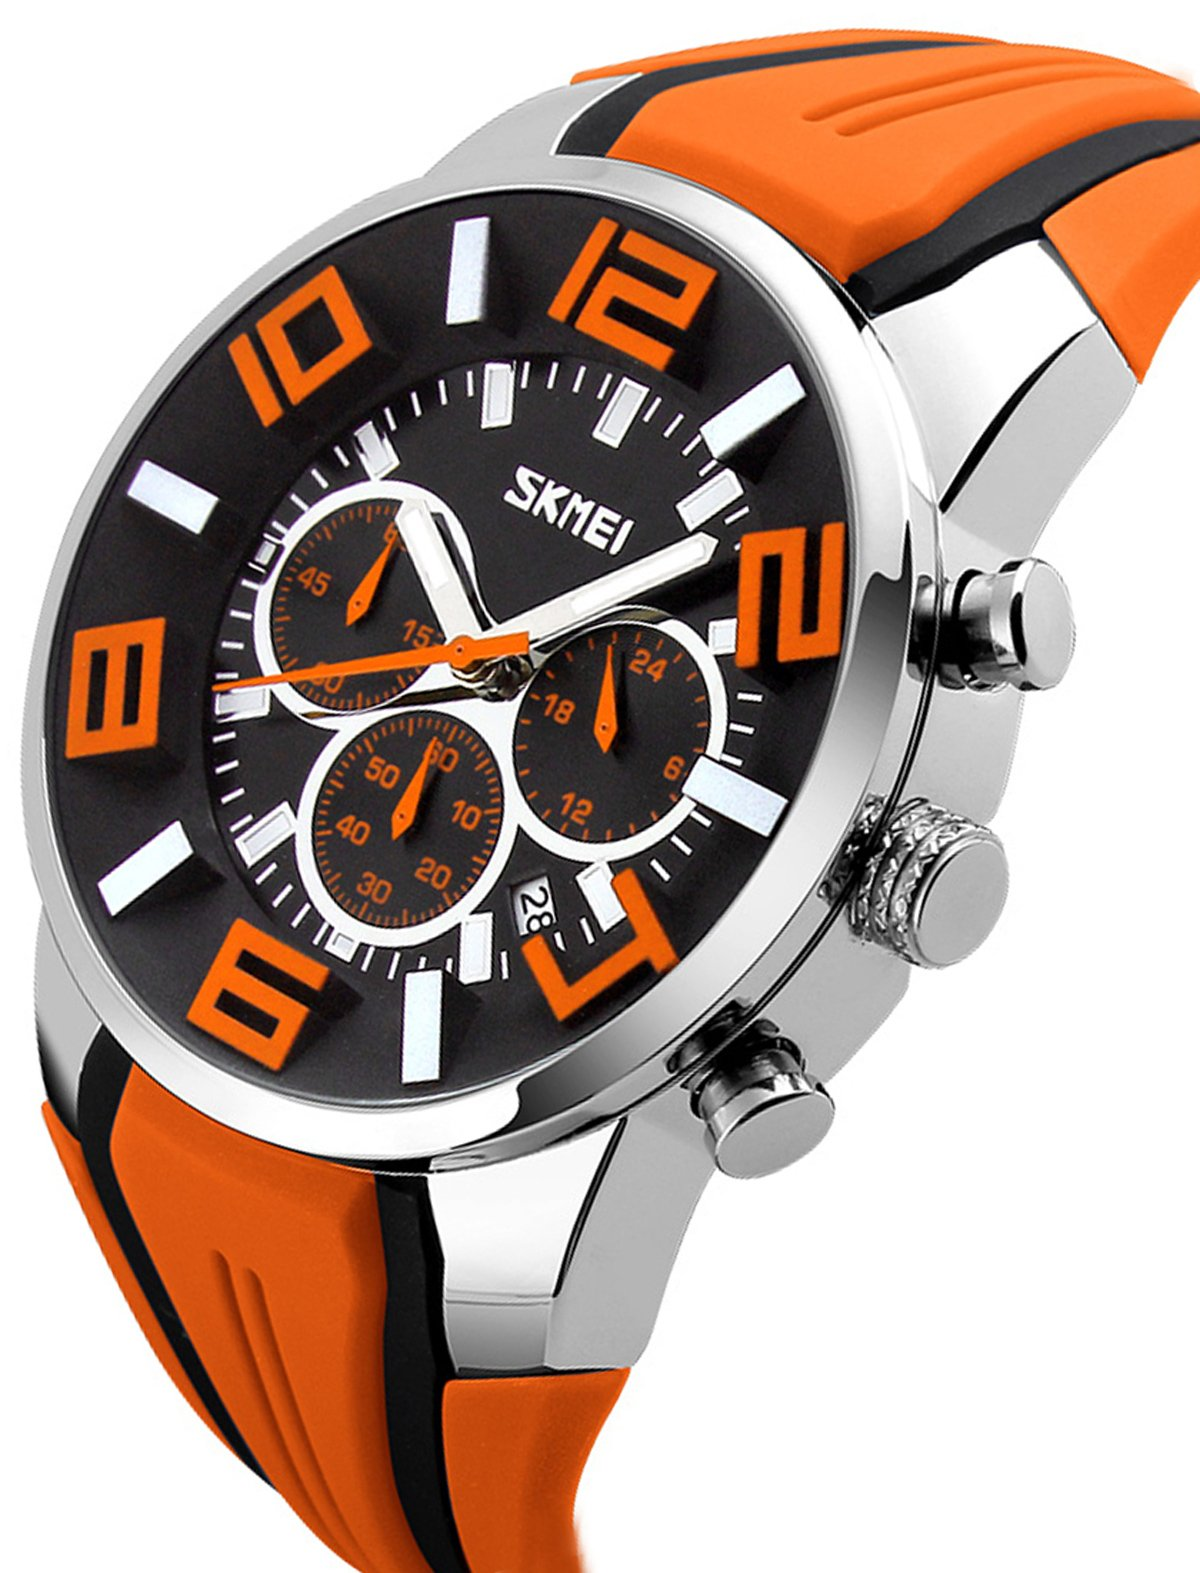 Mens Unique Big Face Watch Outdoor Sports Chronograph Fashion Casual Colorful Analog Quartz Watches Orange